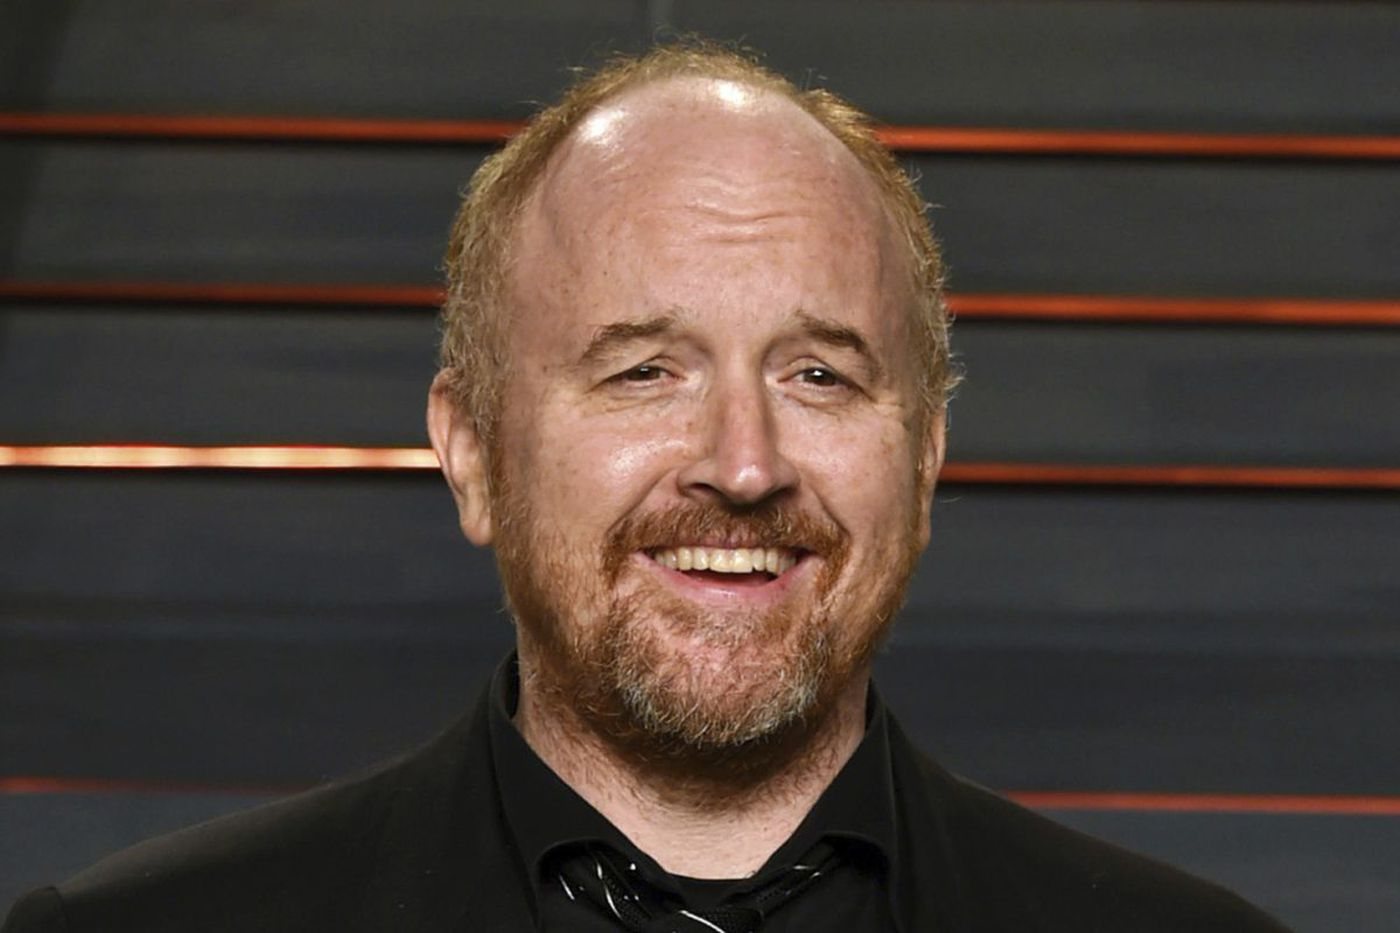 Five women accuse comedian Louis C.K. of sexual misconduct, NYT report says